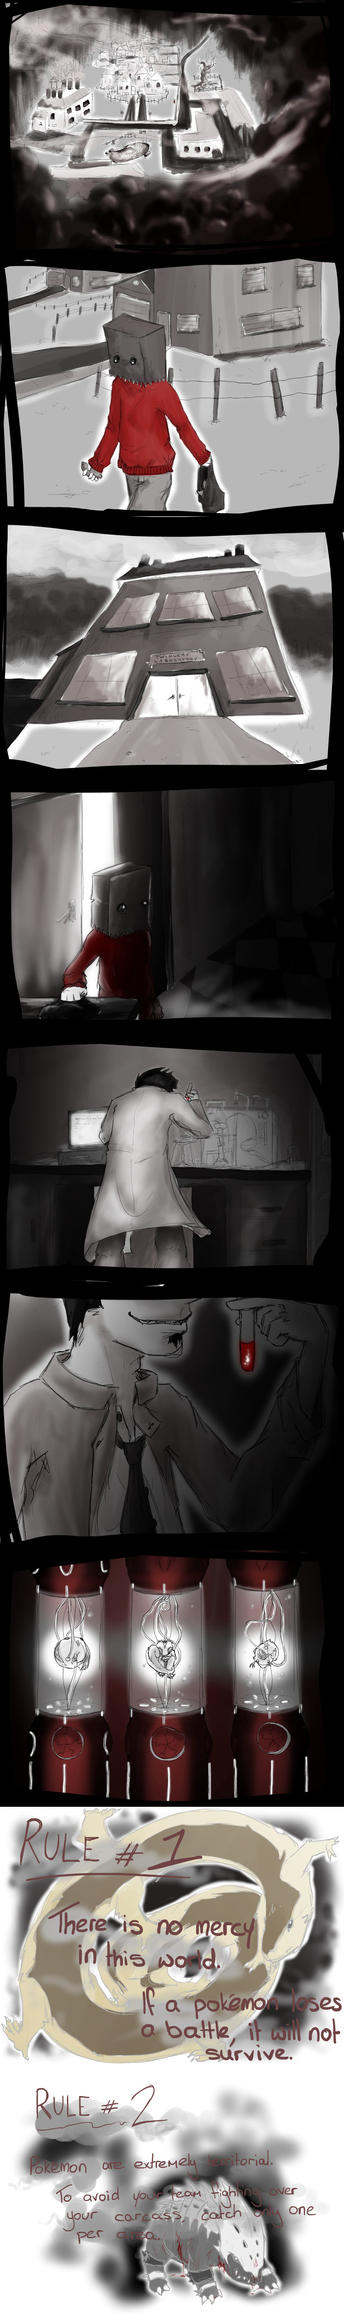 Noah the Second (1 of 2) by Lost-Paperclip